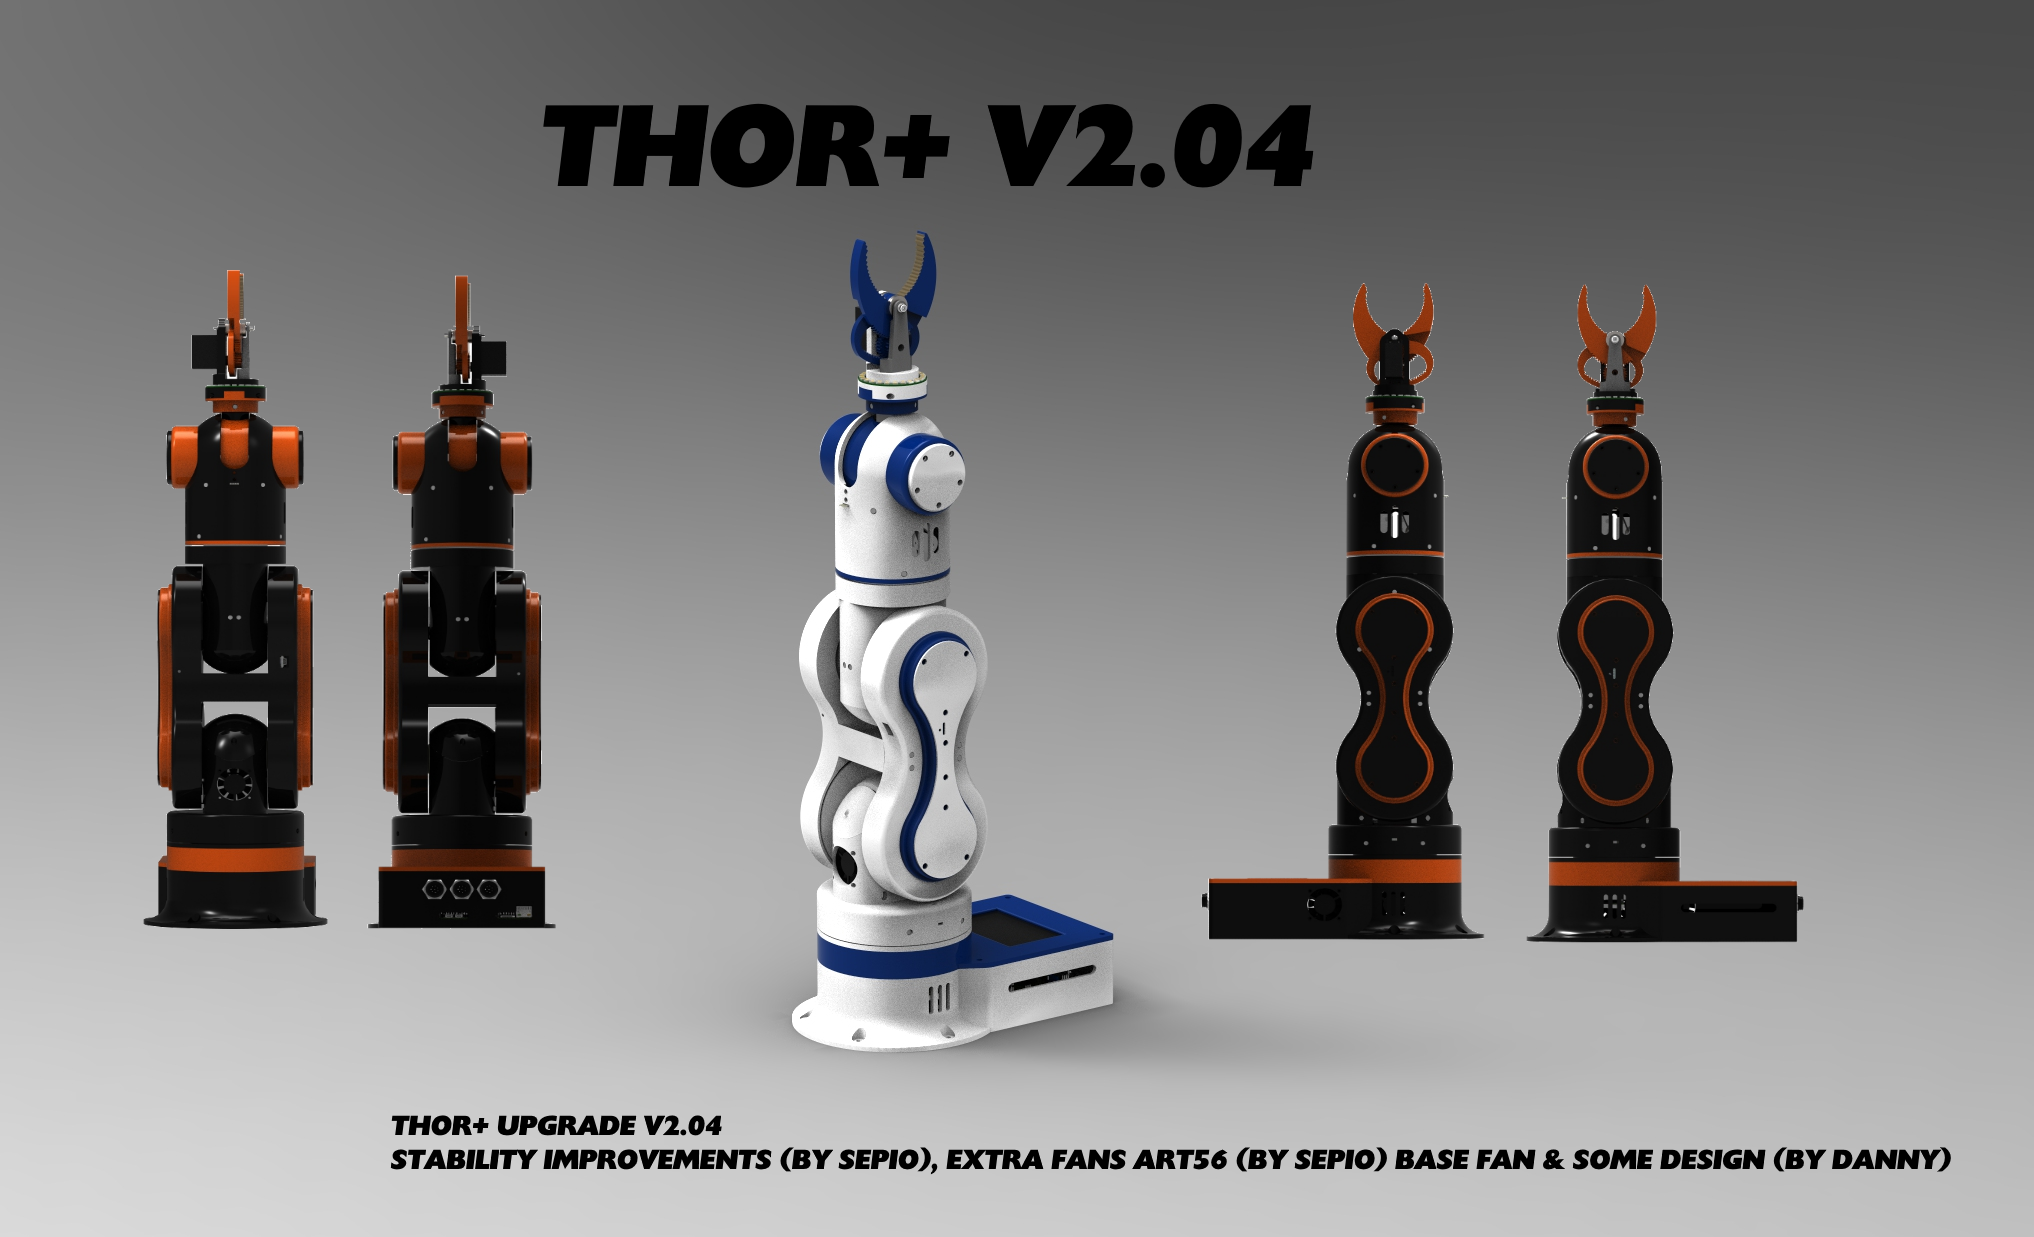 Thor Robot With Addons And Gui Myhobbytronicsblogspotcom 2012 10 555timedelaycircuithtml Upgrade V204